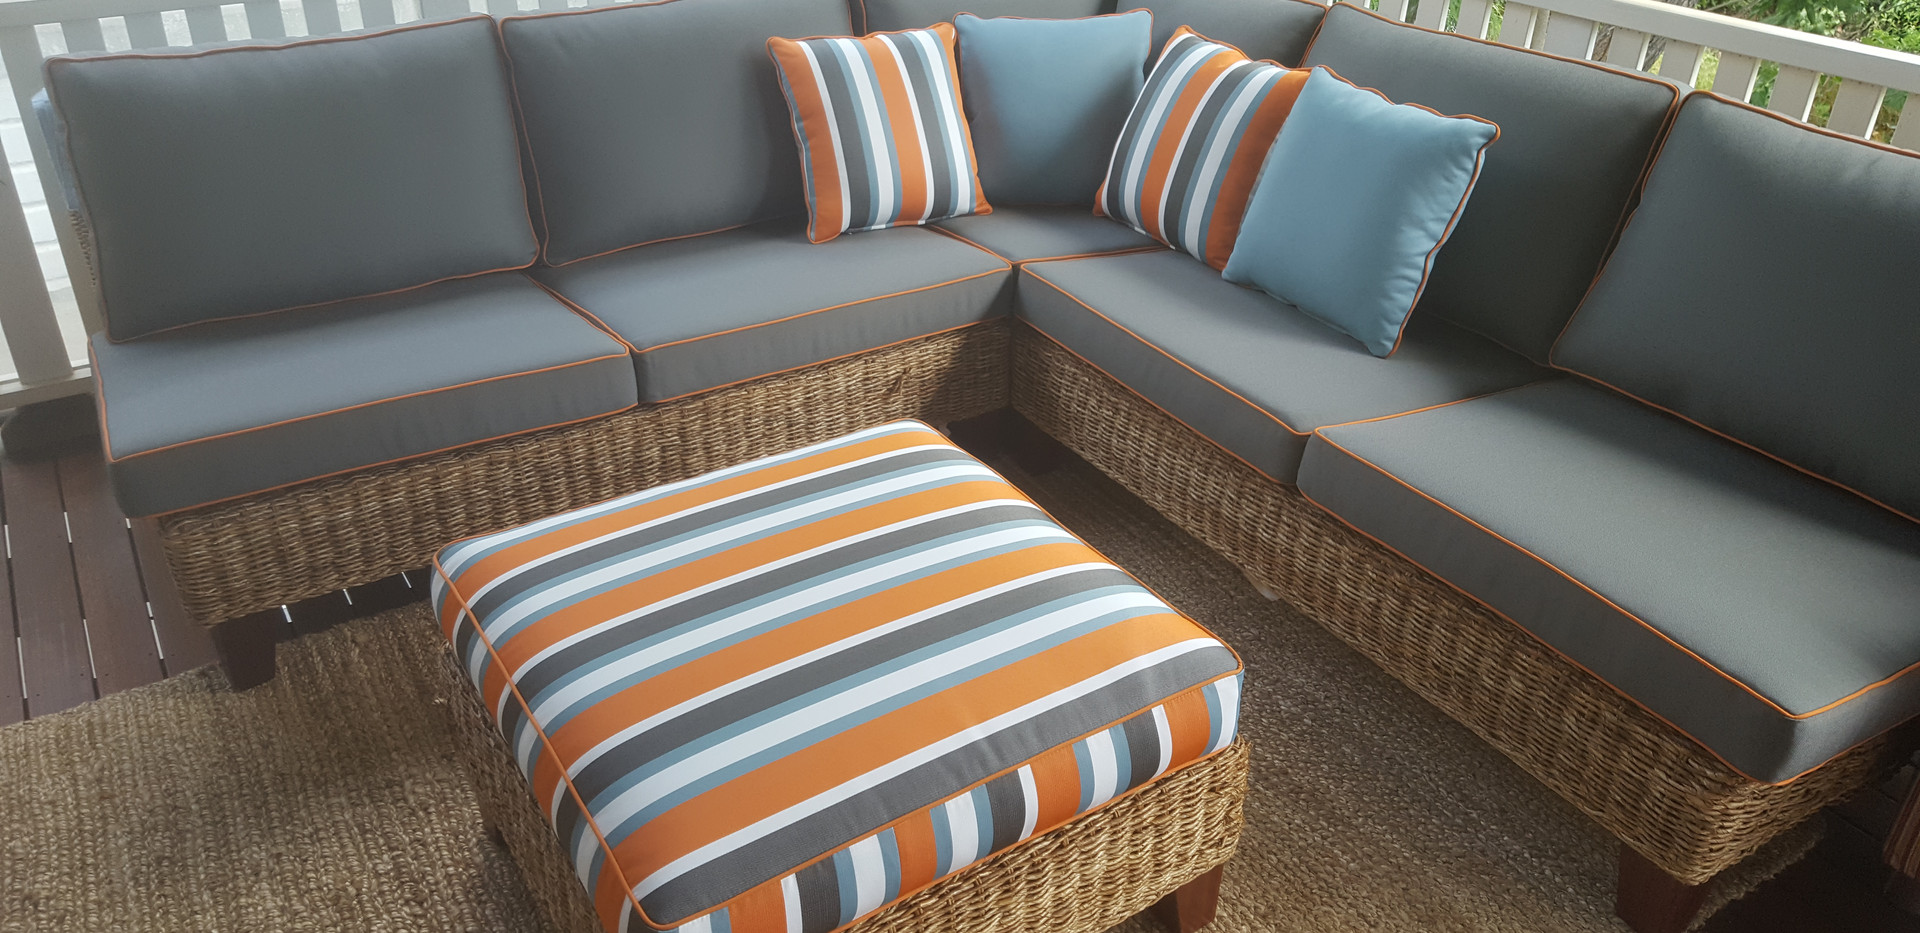 Stunning_Outdoor_Furniture_Reupholstery.